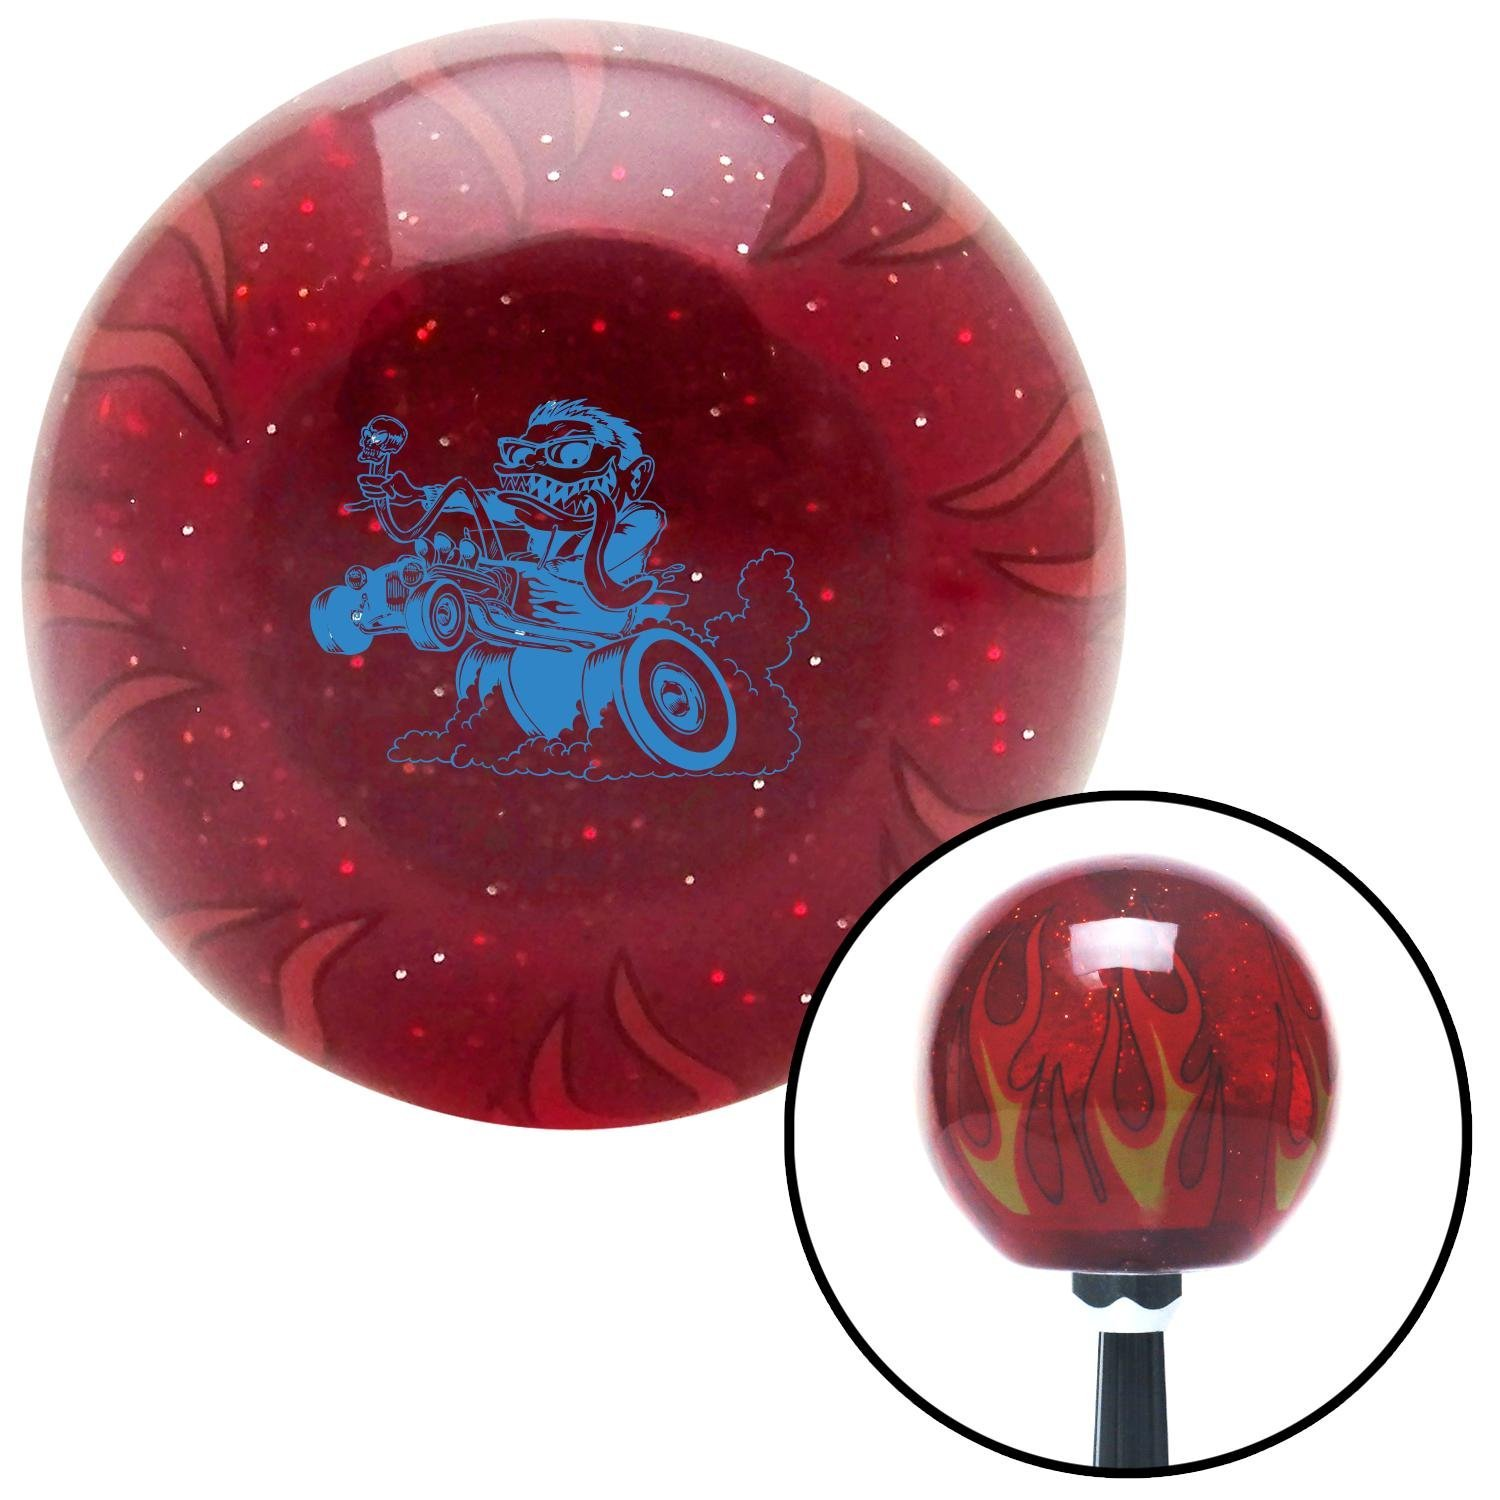 American Shifter 242594 Red Flame Metal Flake Shift Knob with M16 x 1.5 Insert Blue Hot Rodder